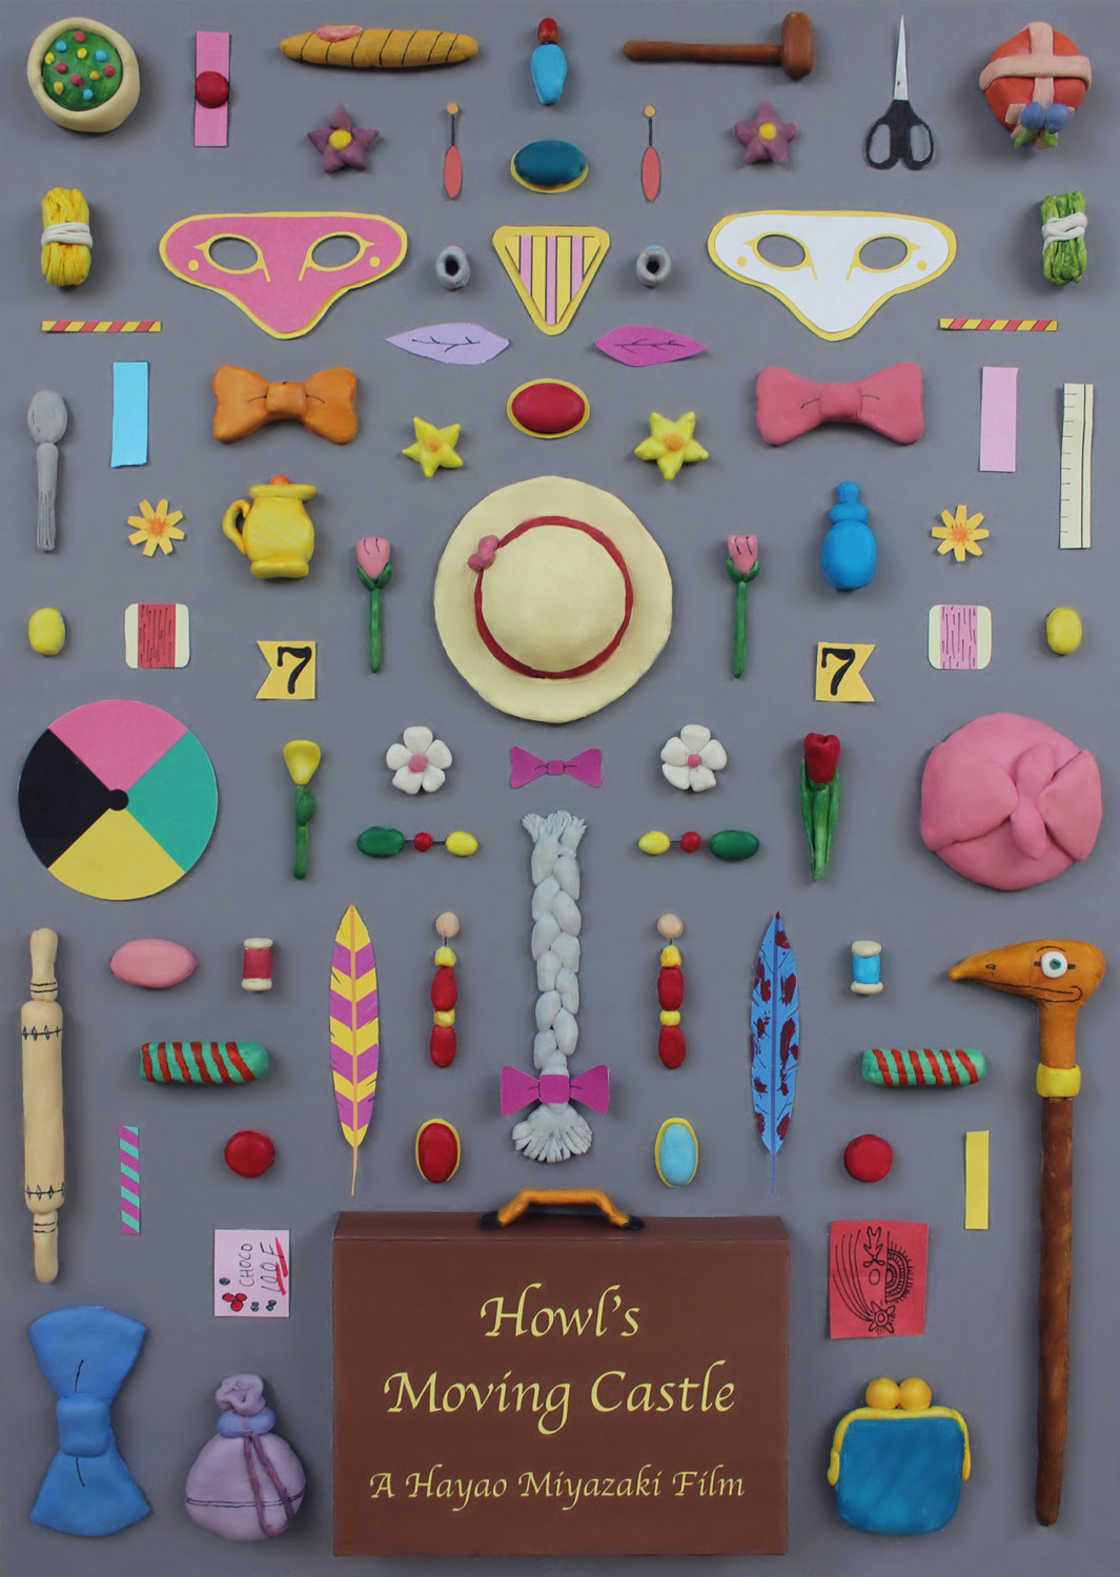 The iconic objects of the movies by Miyazaki together in beautiful posters